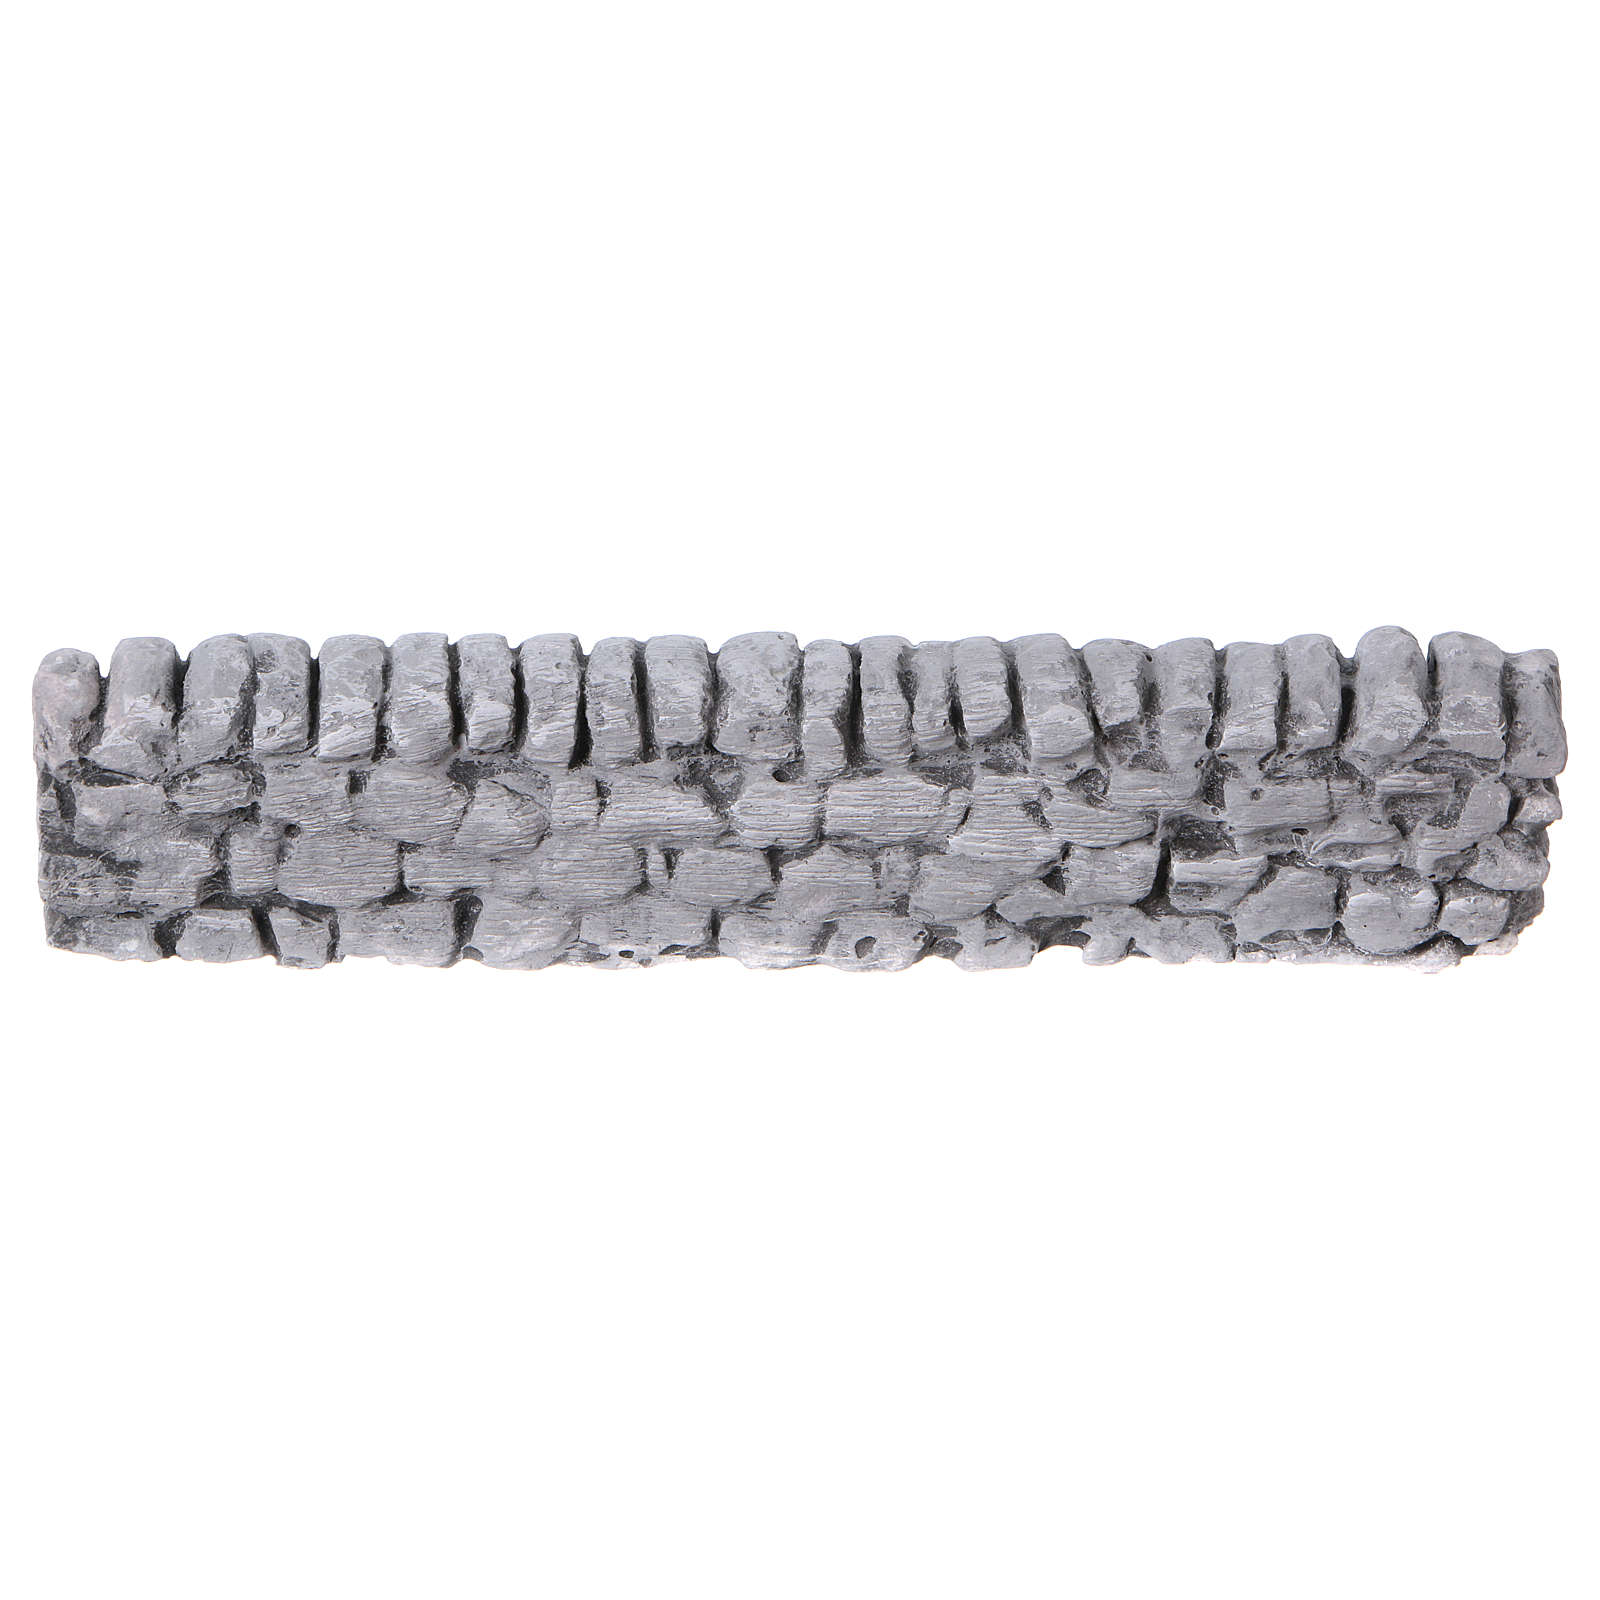 Nativity setting, wall with bricks in plaster 5x19cm 4